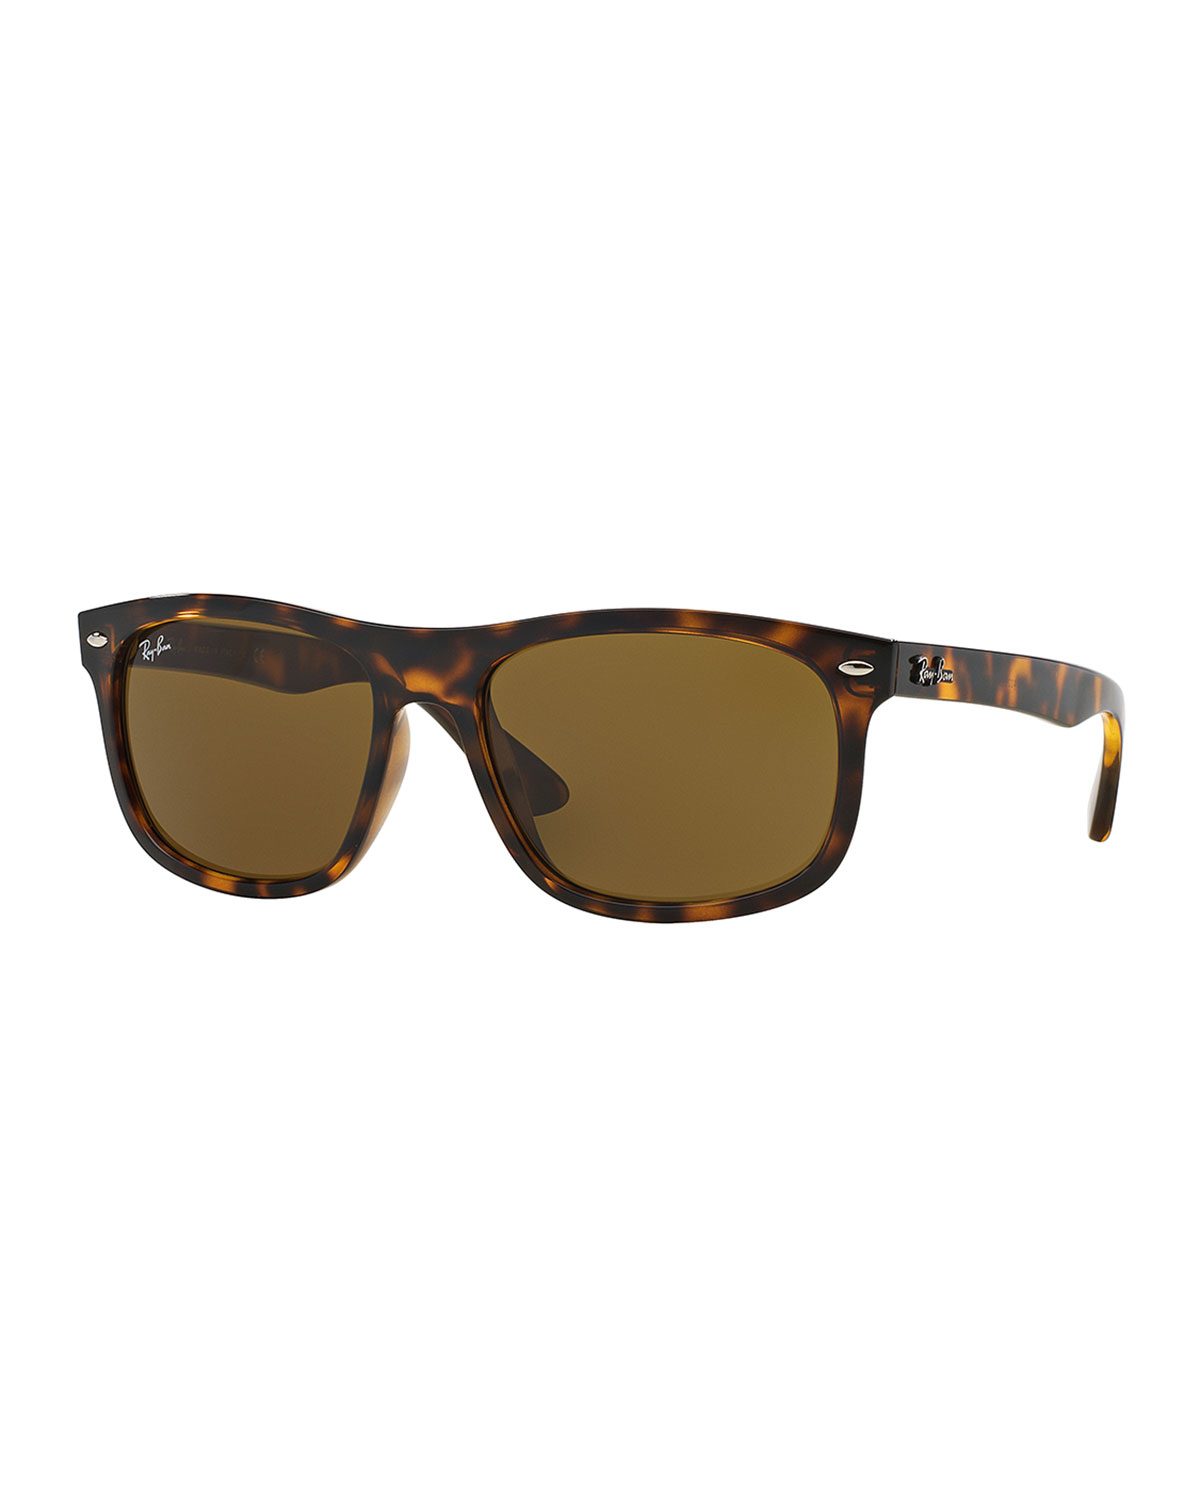 lyst ray ban new wayfarer classic sunglasses in brown for men. Black Bedroom Furniture Sets. Home Design Ideas